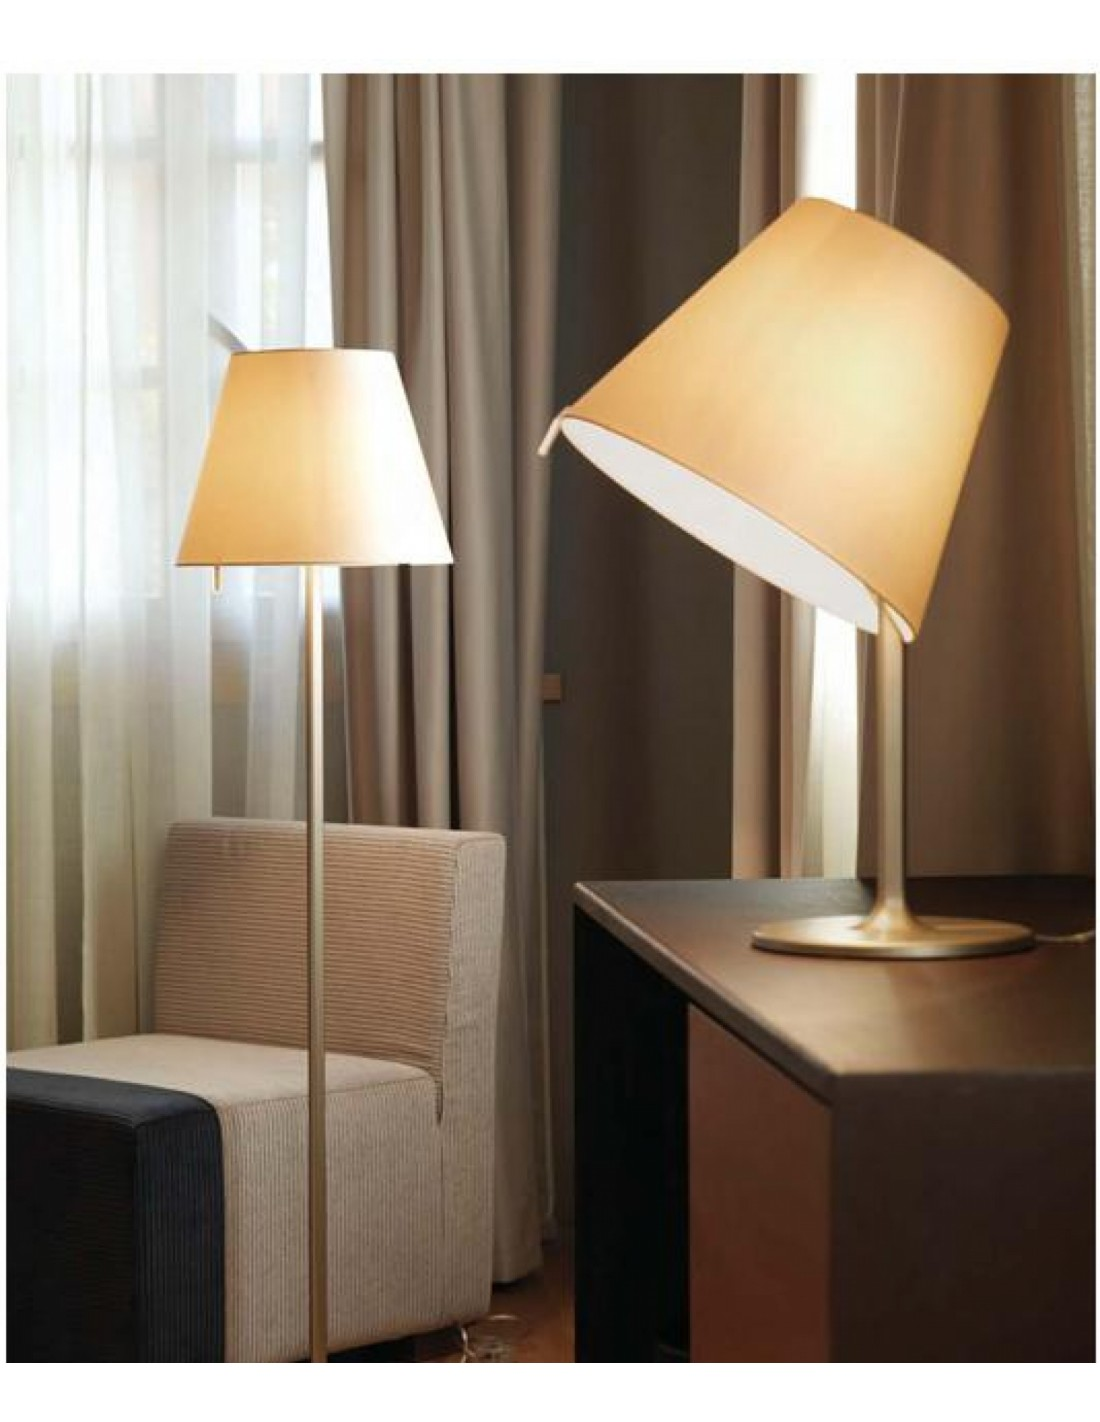 Lampe de table melampo tavolo mise en sc ne hotel artemide for Lampe de table rona